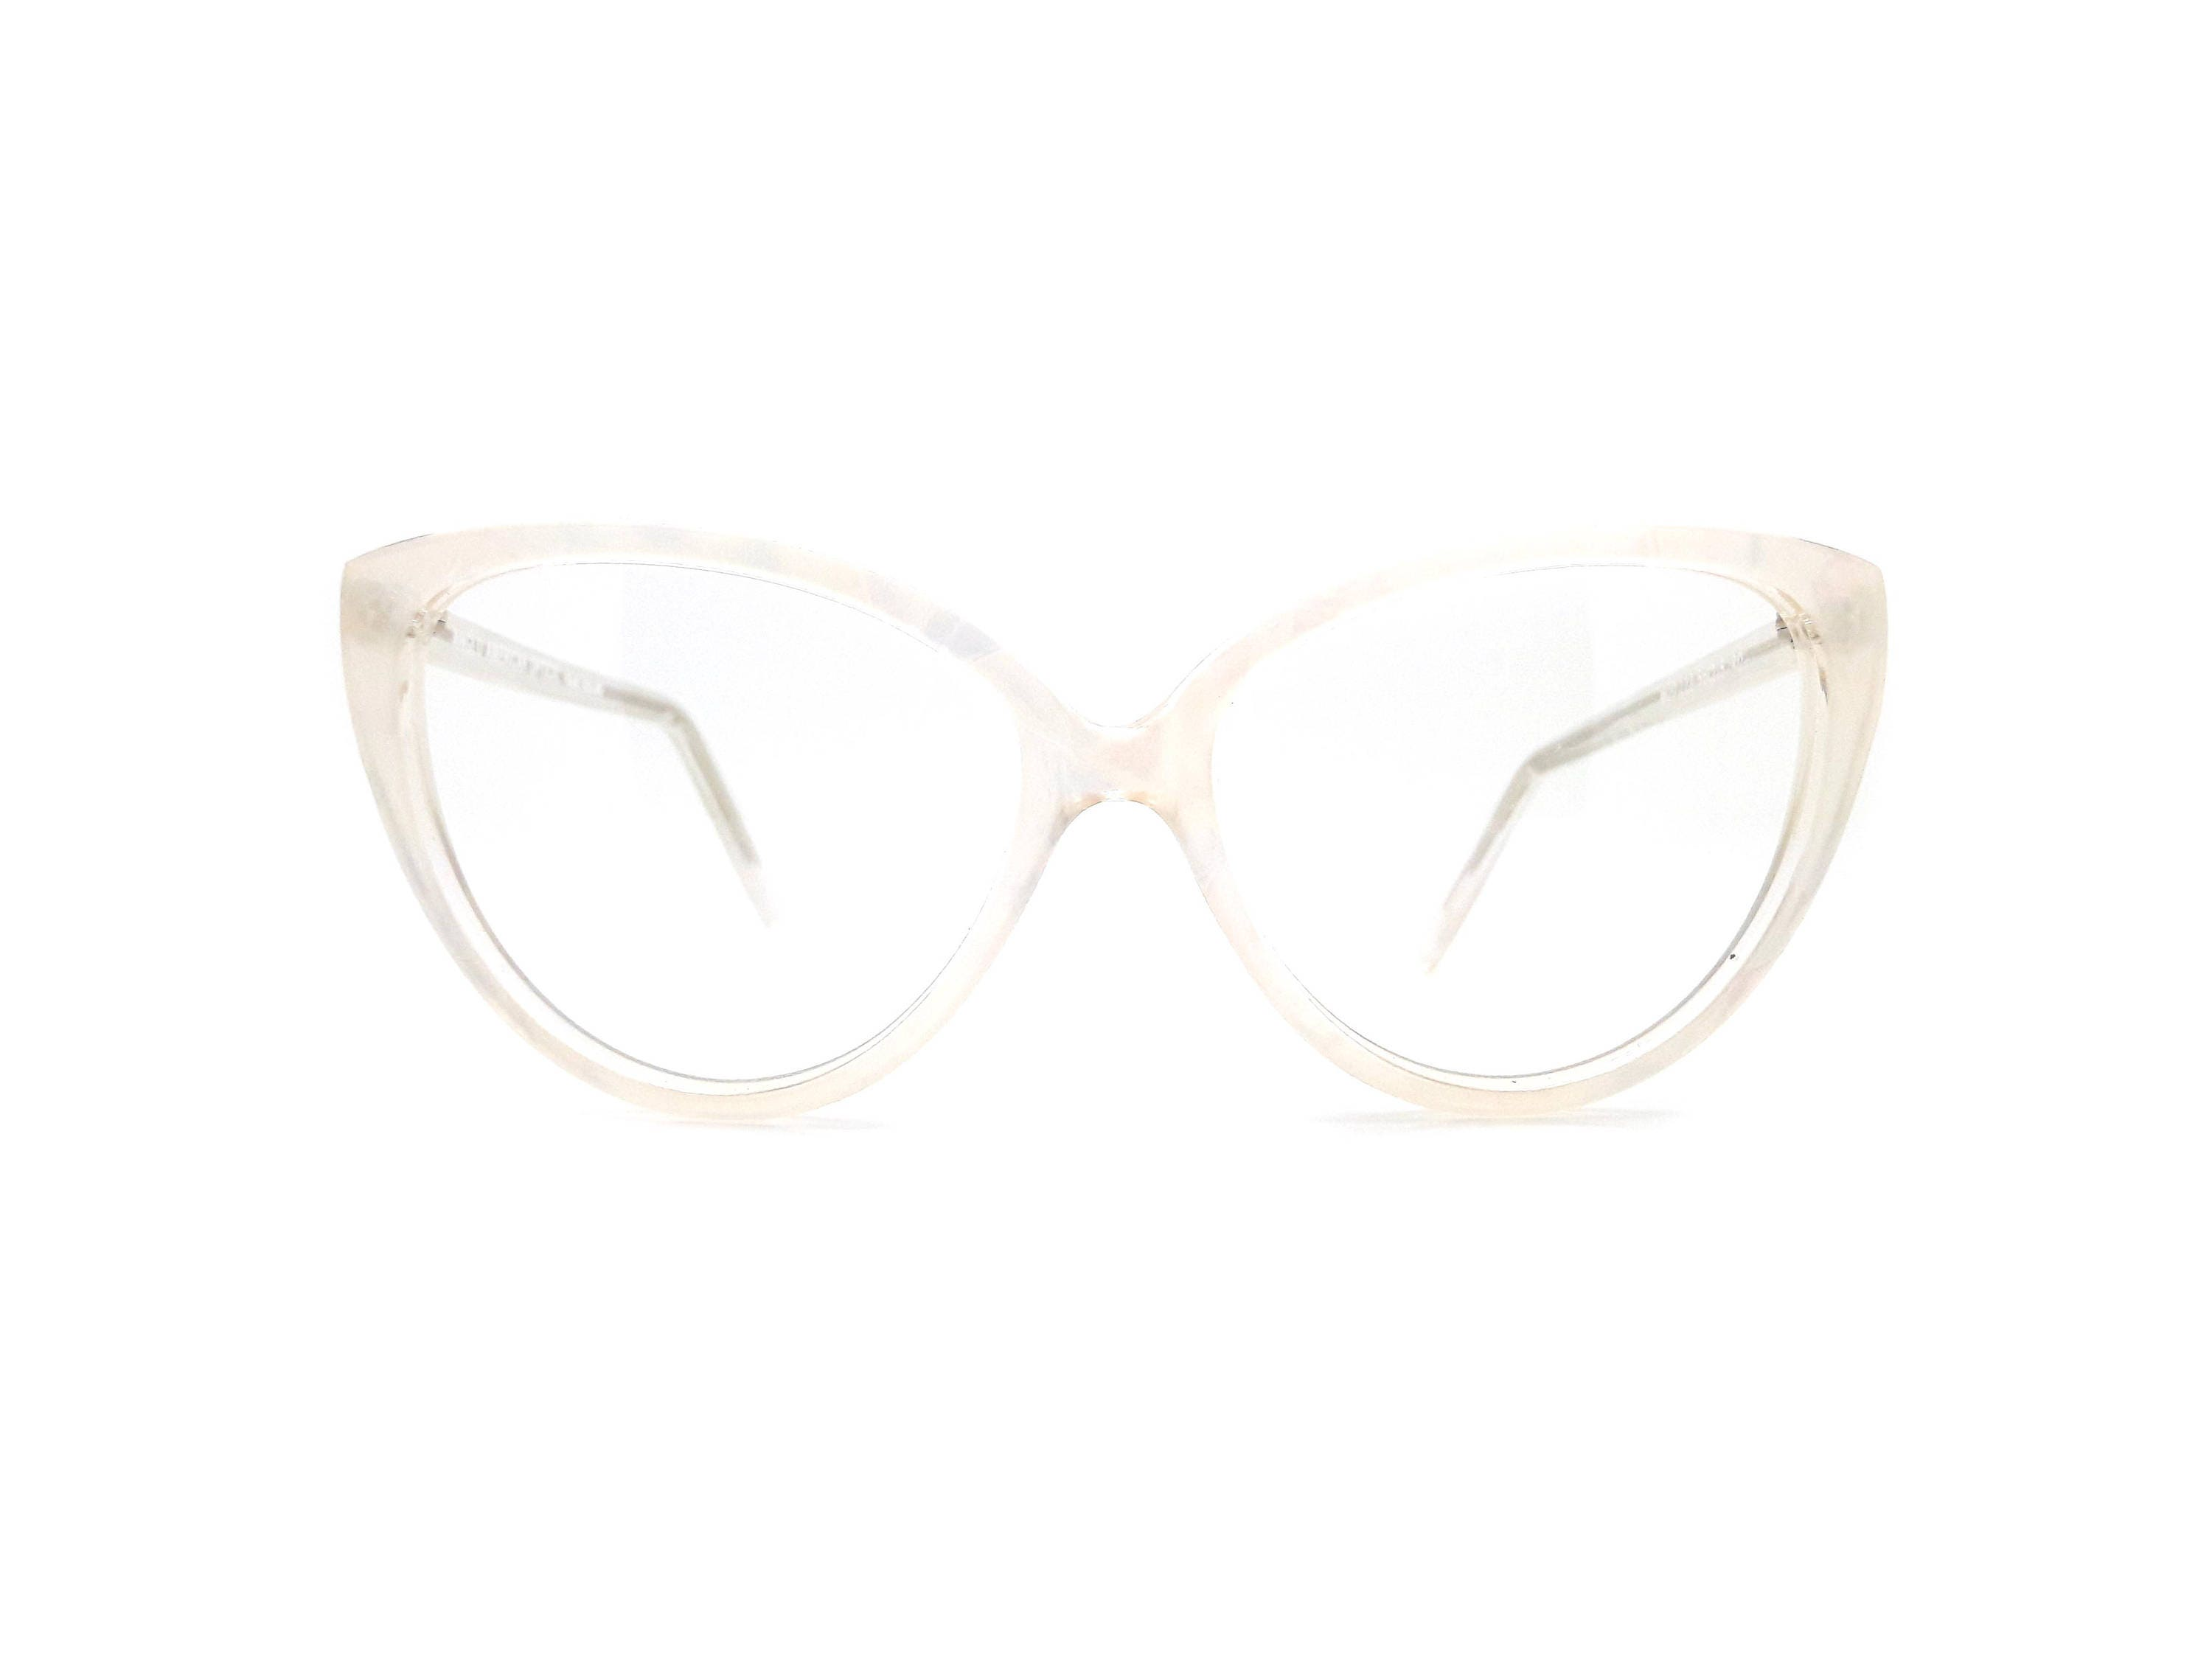 136ac70548 Genuine 1980s Anglo American Optical 123 IRD Vintage Optical Eyeglasses  Frame Cateye    Made in